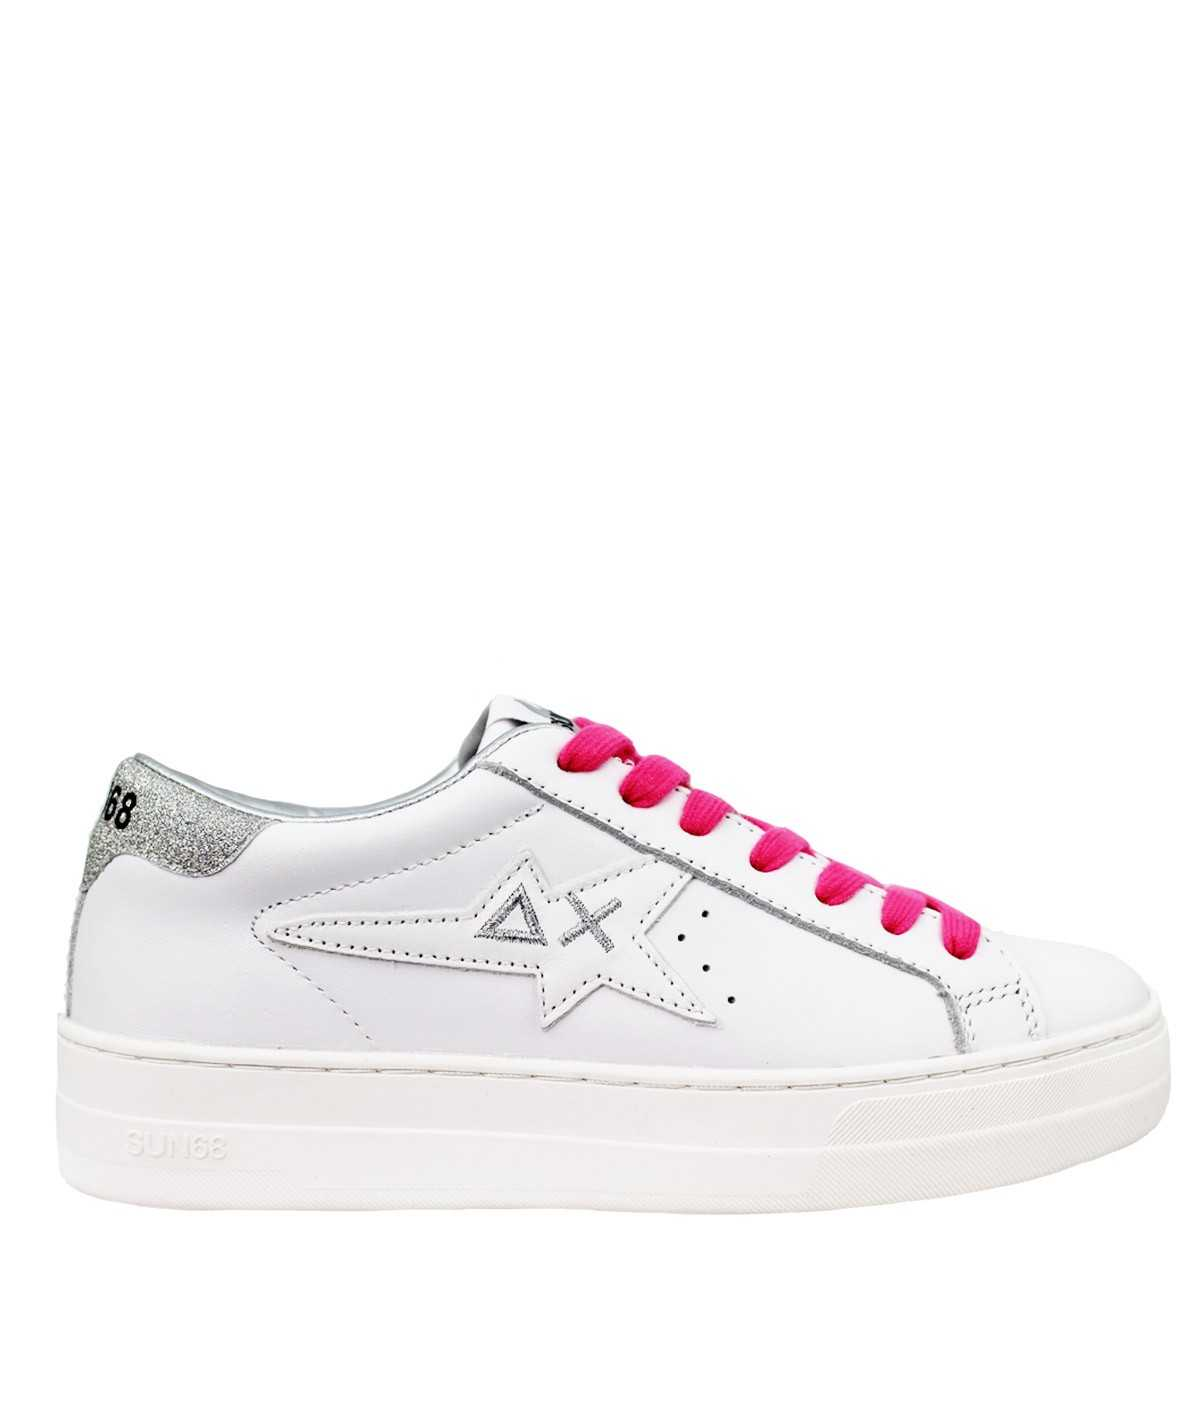 SUN68 Sneakers Donna